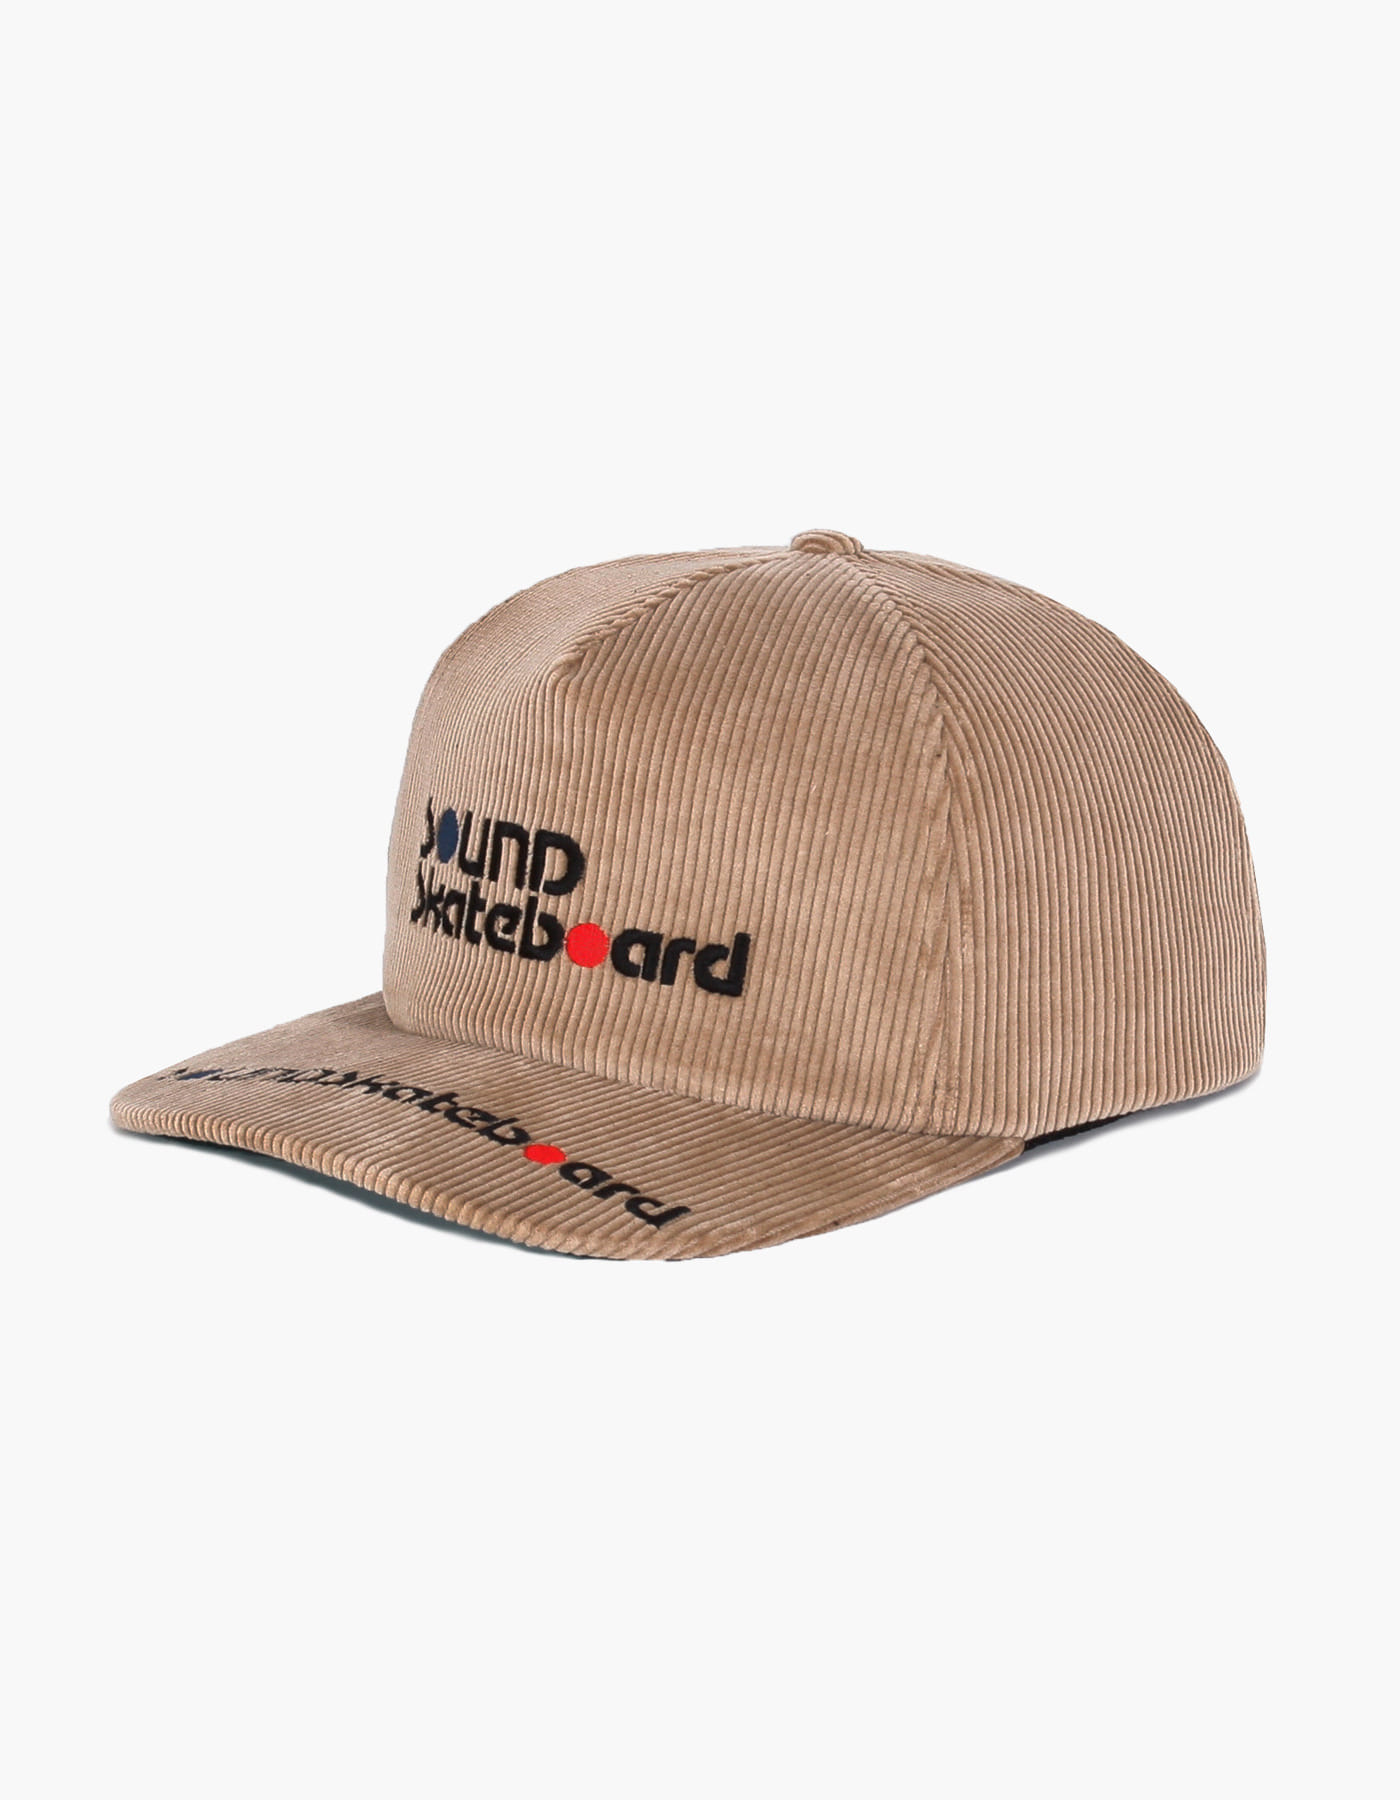 SOUNDSK8 CORDUROY 5 PANEL CAP / BEIGE